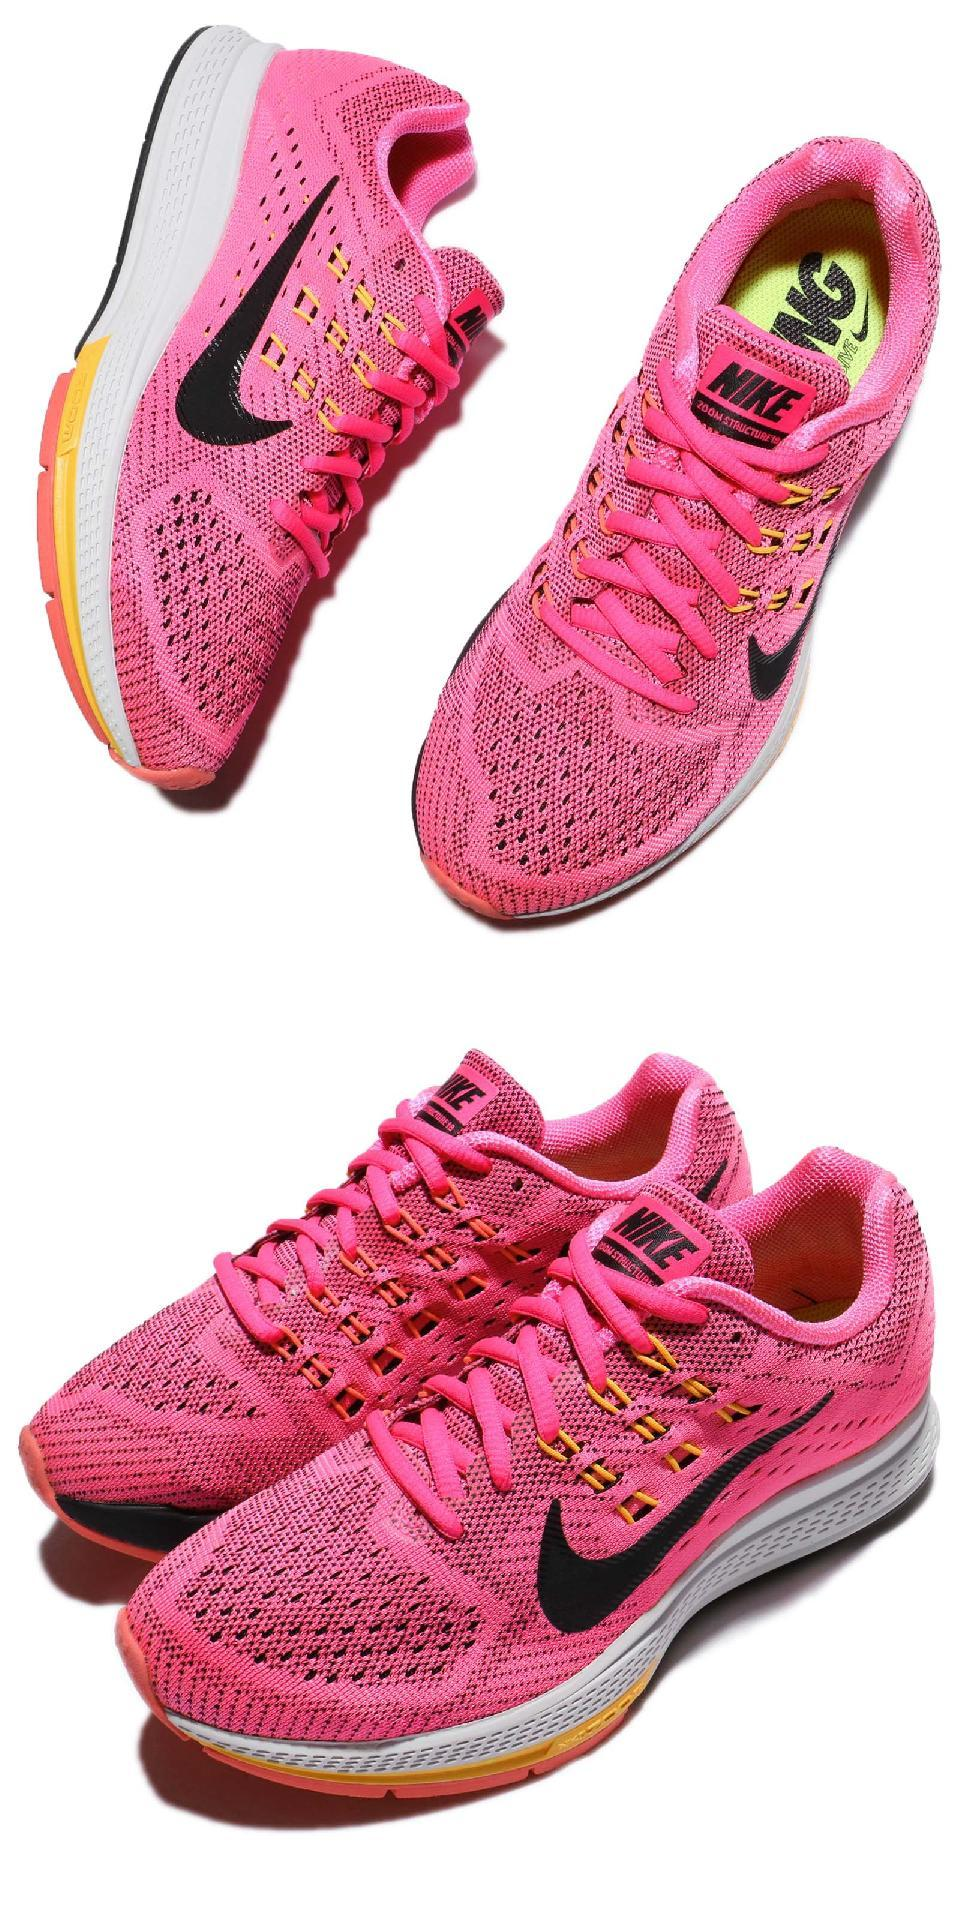 sale retailer bb27a a5336 BUTY NIKE AIR ZOOM STRUCTURE 18 683737 608 R.40,5 (7220729597)